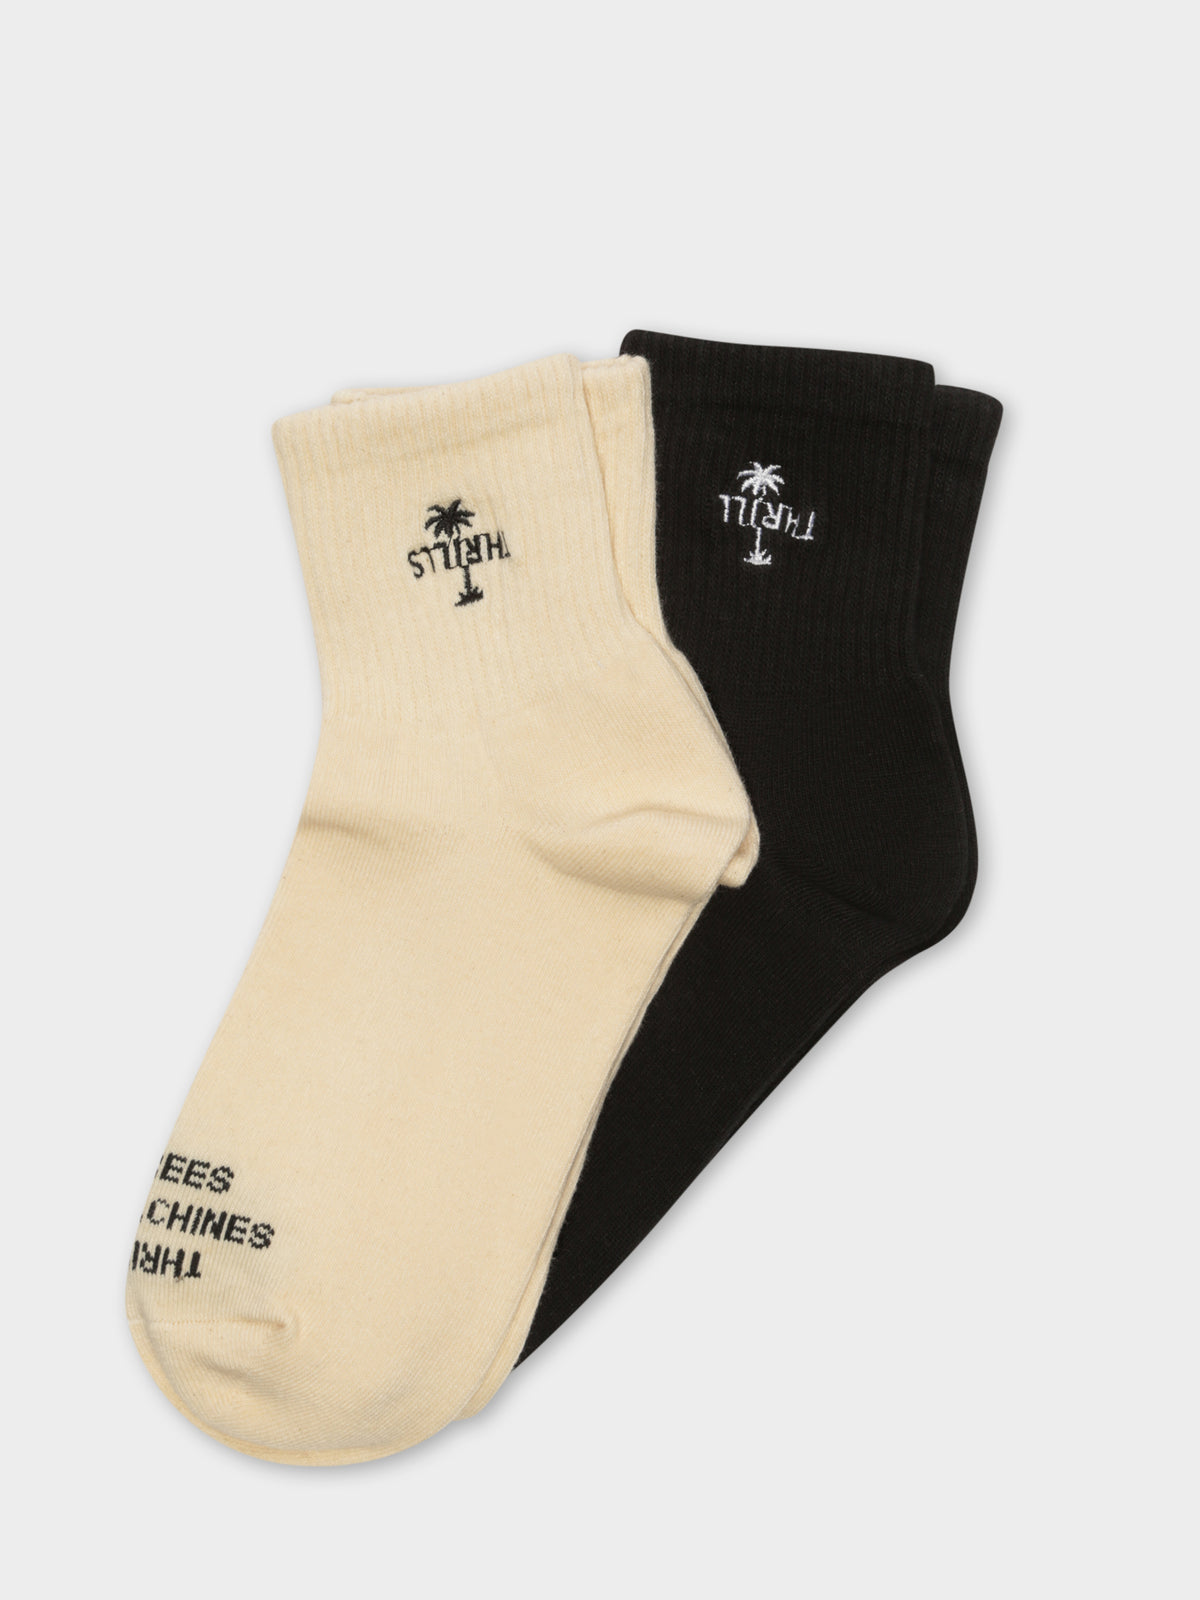 2 Pair Palm Ankle Socks in Black and Yellow